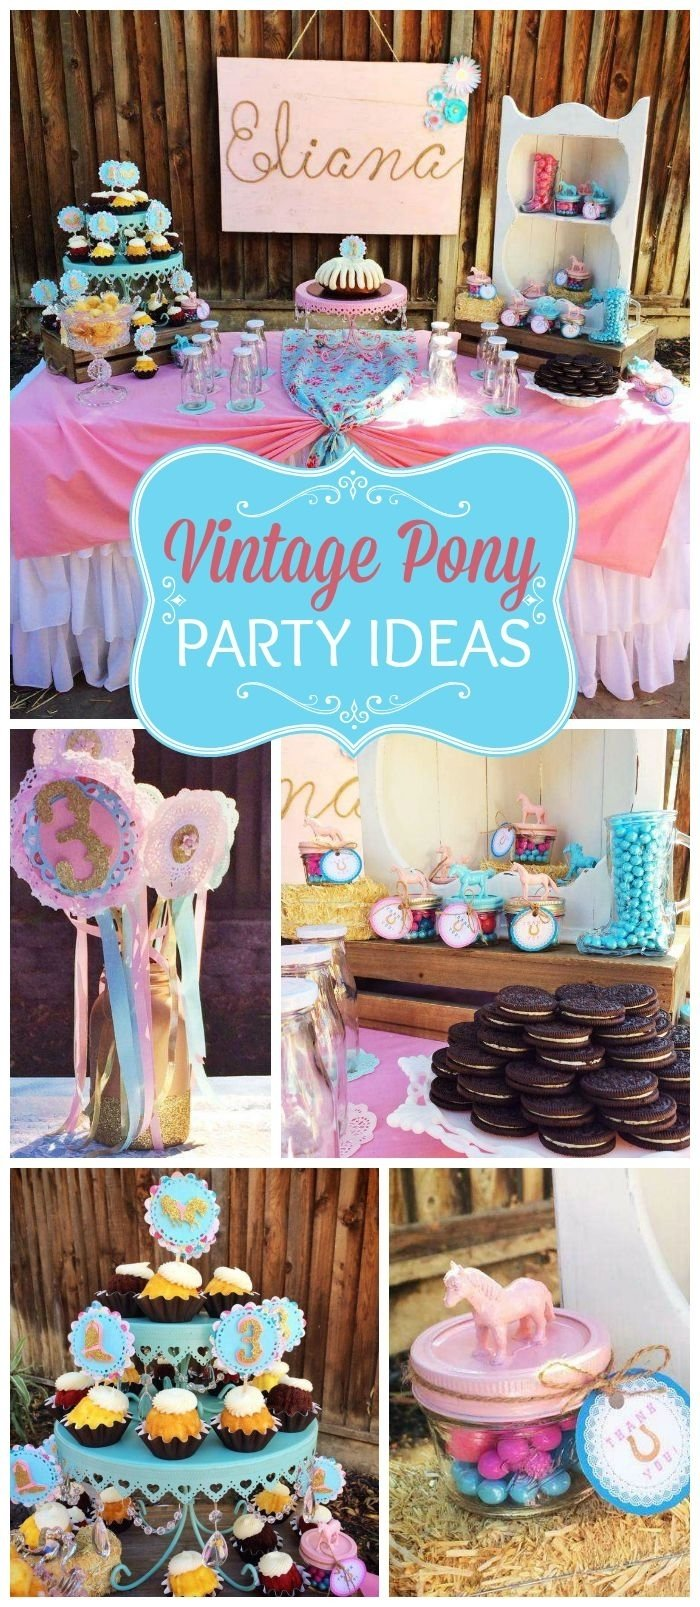 10 Gorgeous Petting Zoo Birthday Party Ideas pink and teal pony themed birthday party ideas decor planning 2020